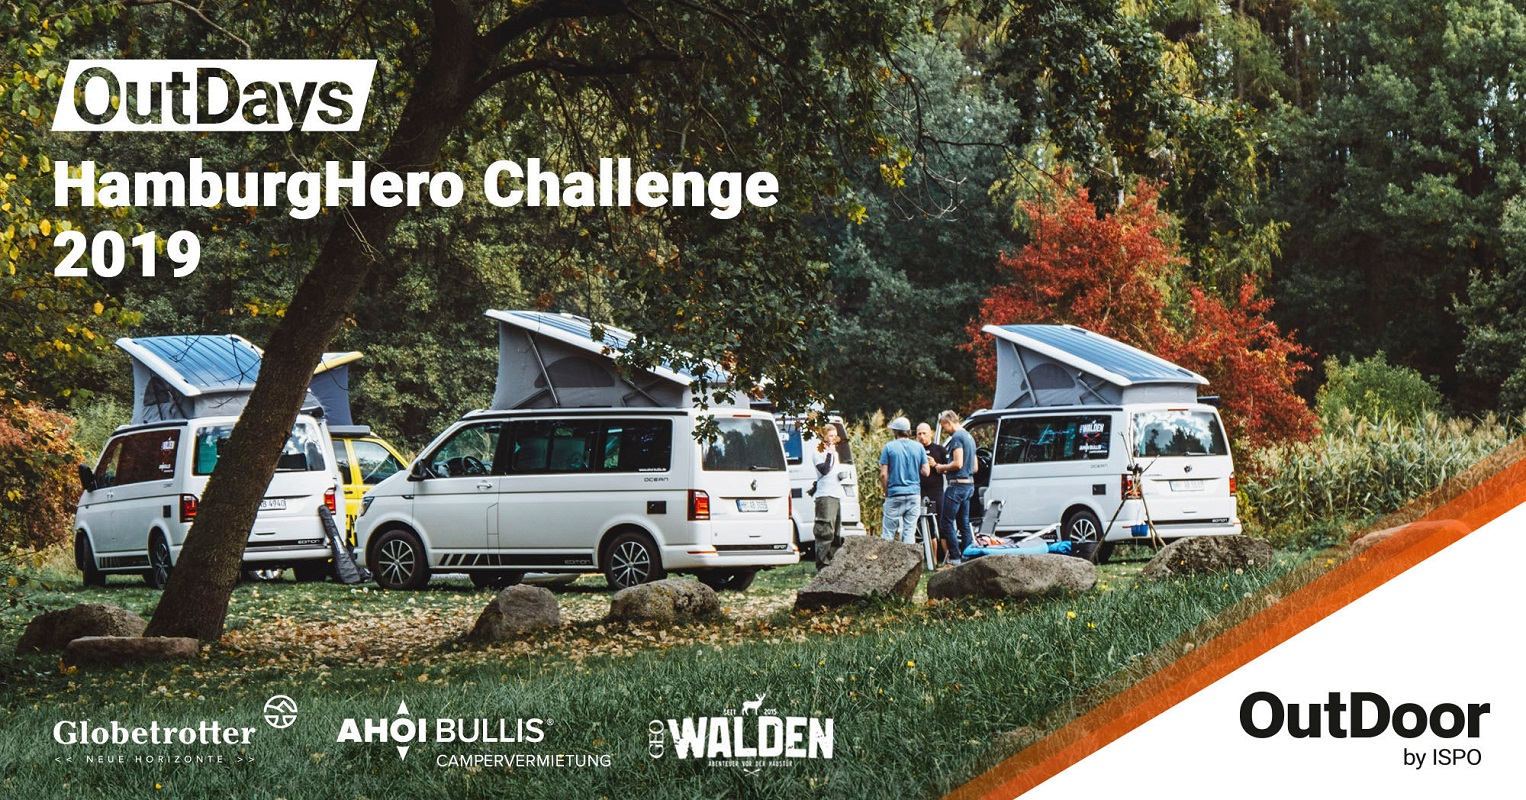 Out Days Hamburg Hero Challenge 2019.jpg